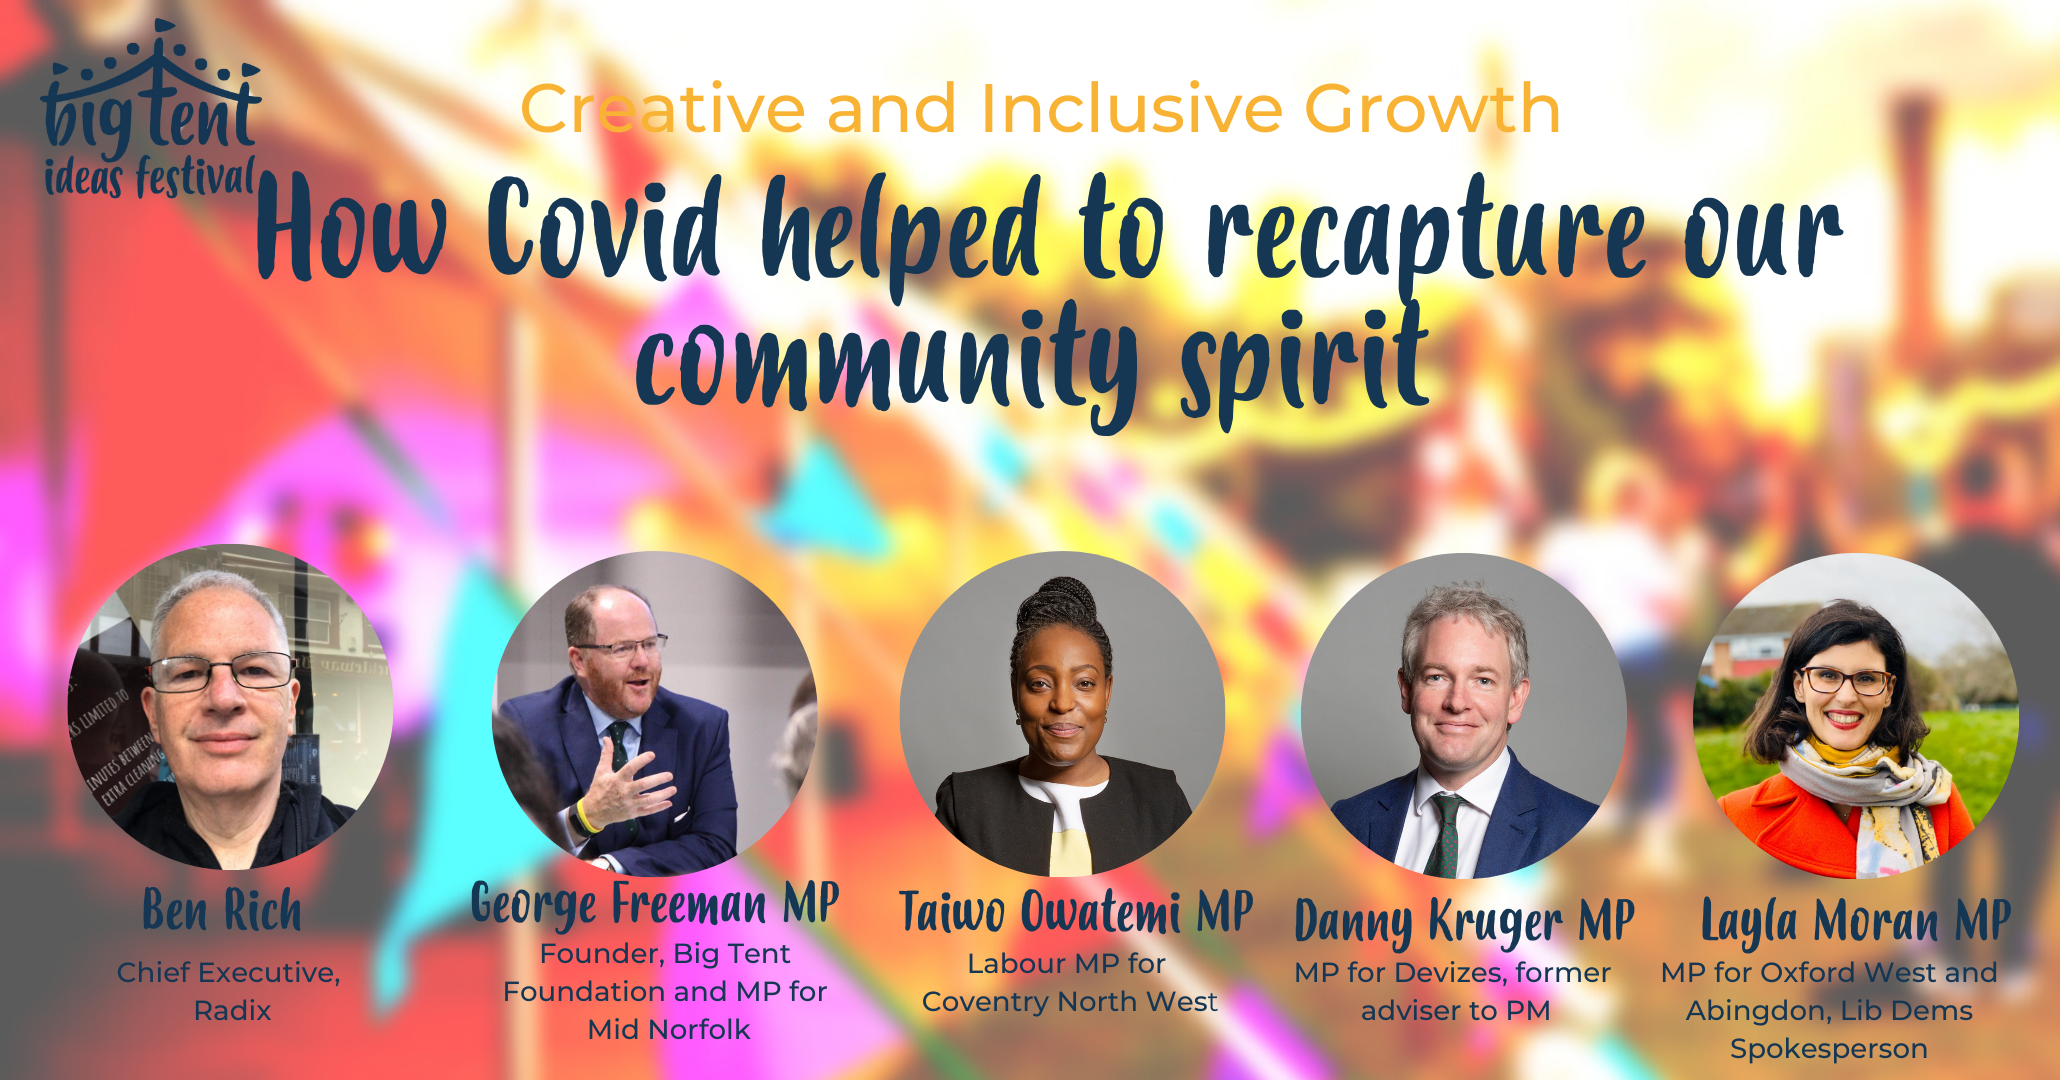 How Covid helped to recapture our community spirit